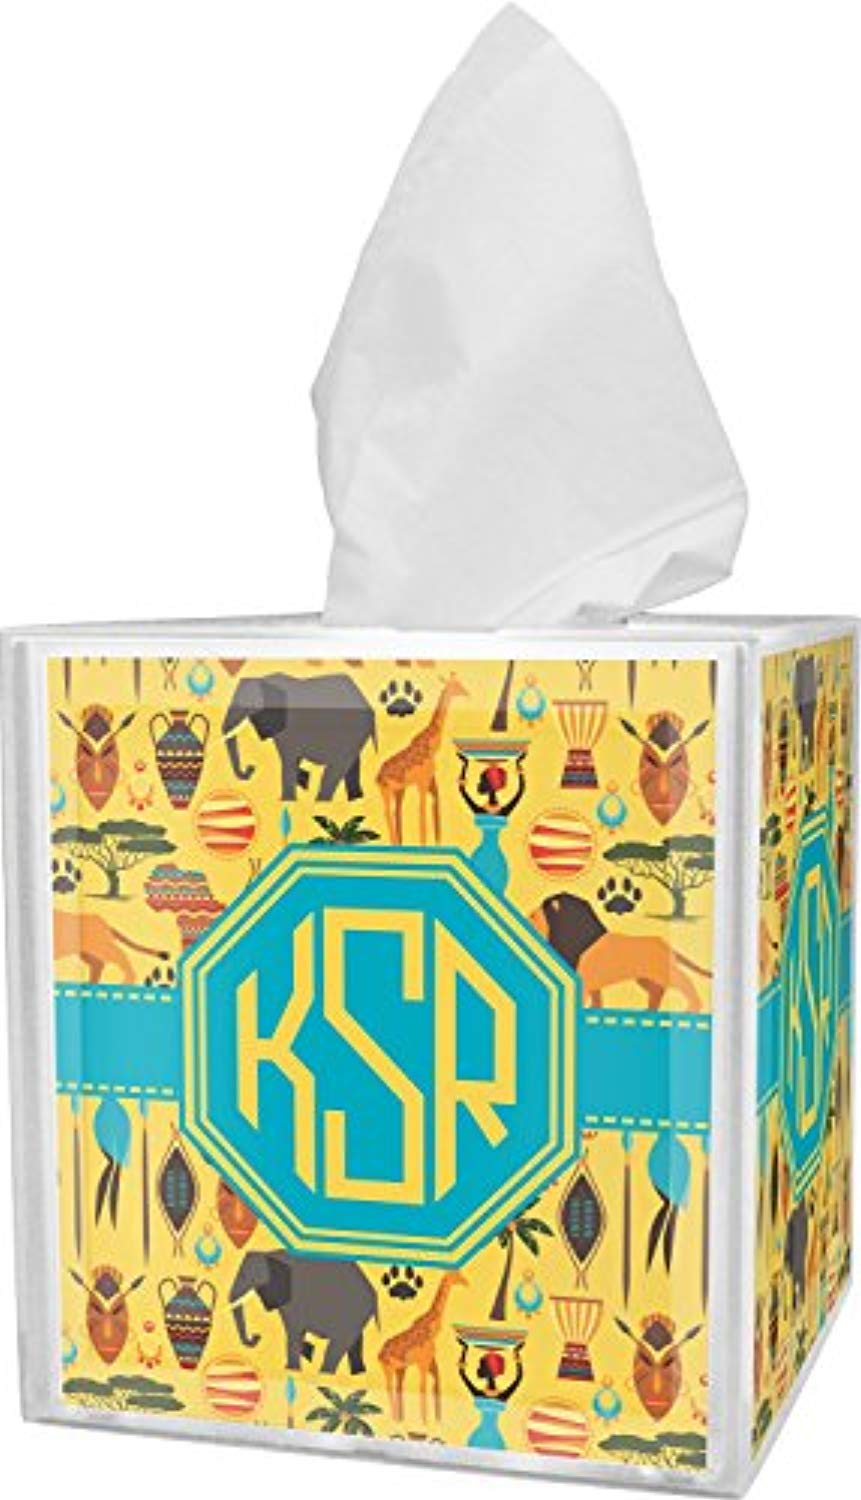 RNK Shops African Safari Tissue Box Cover (Personalized) - Ufumbuzi - Home